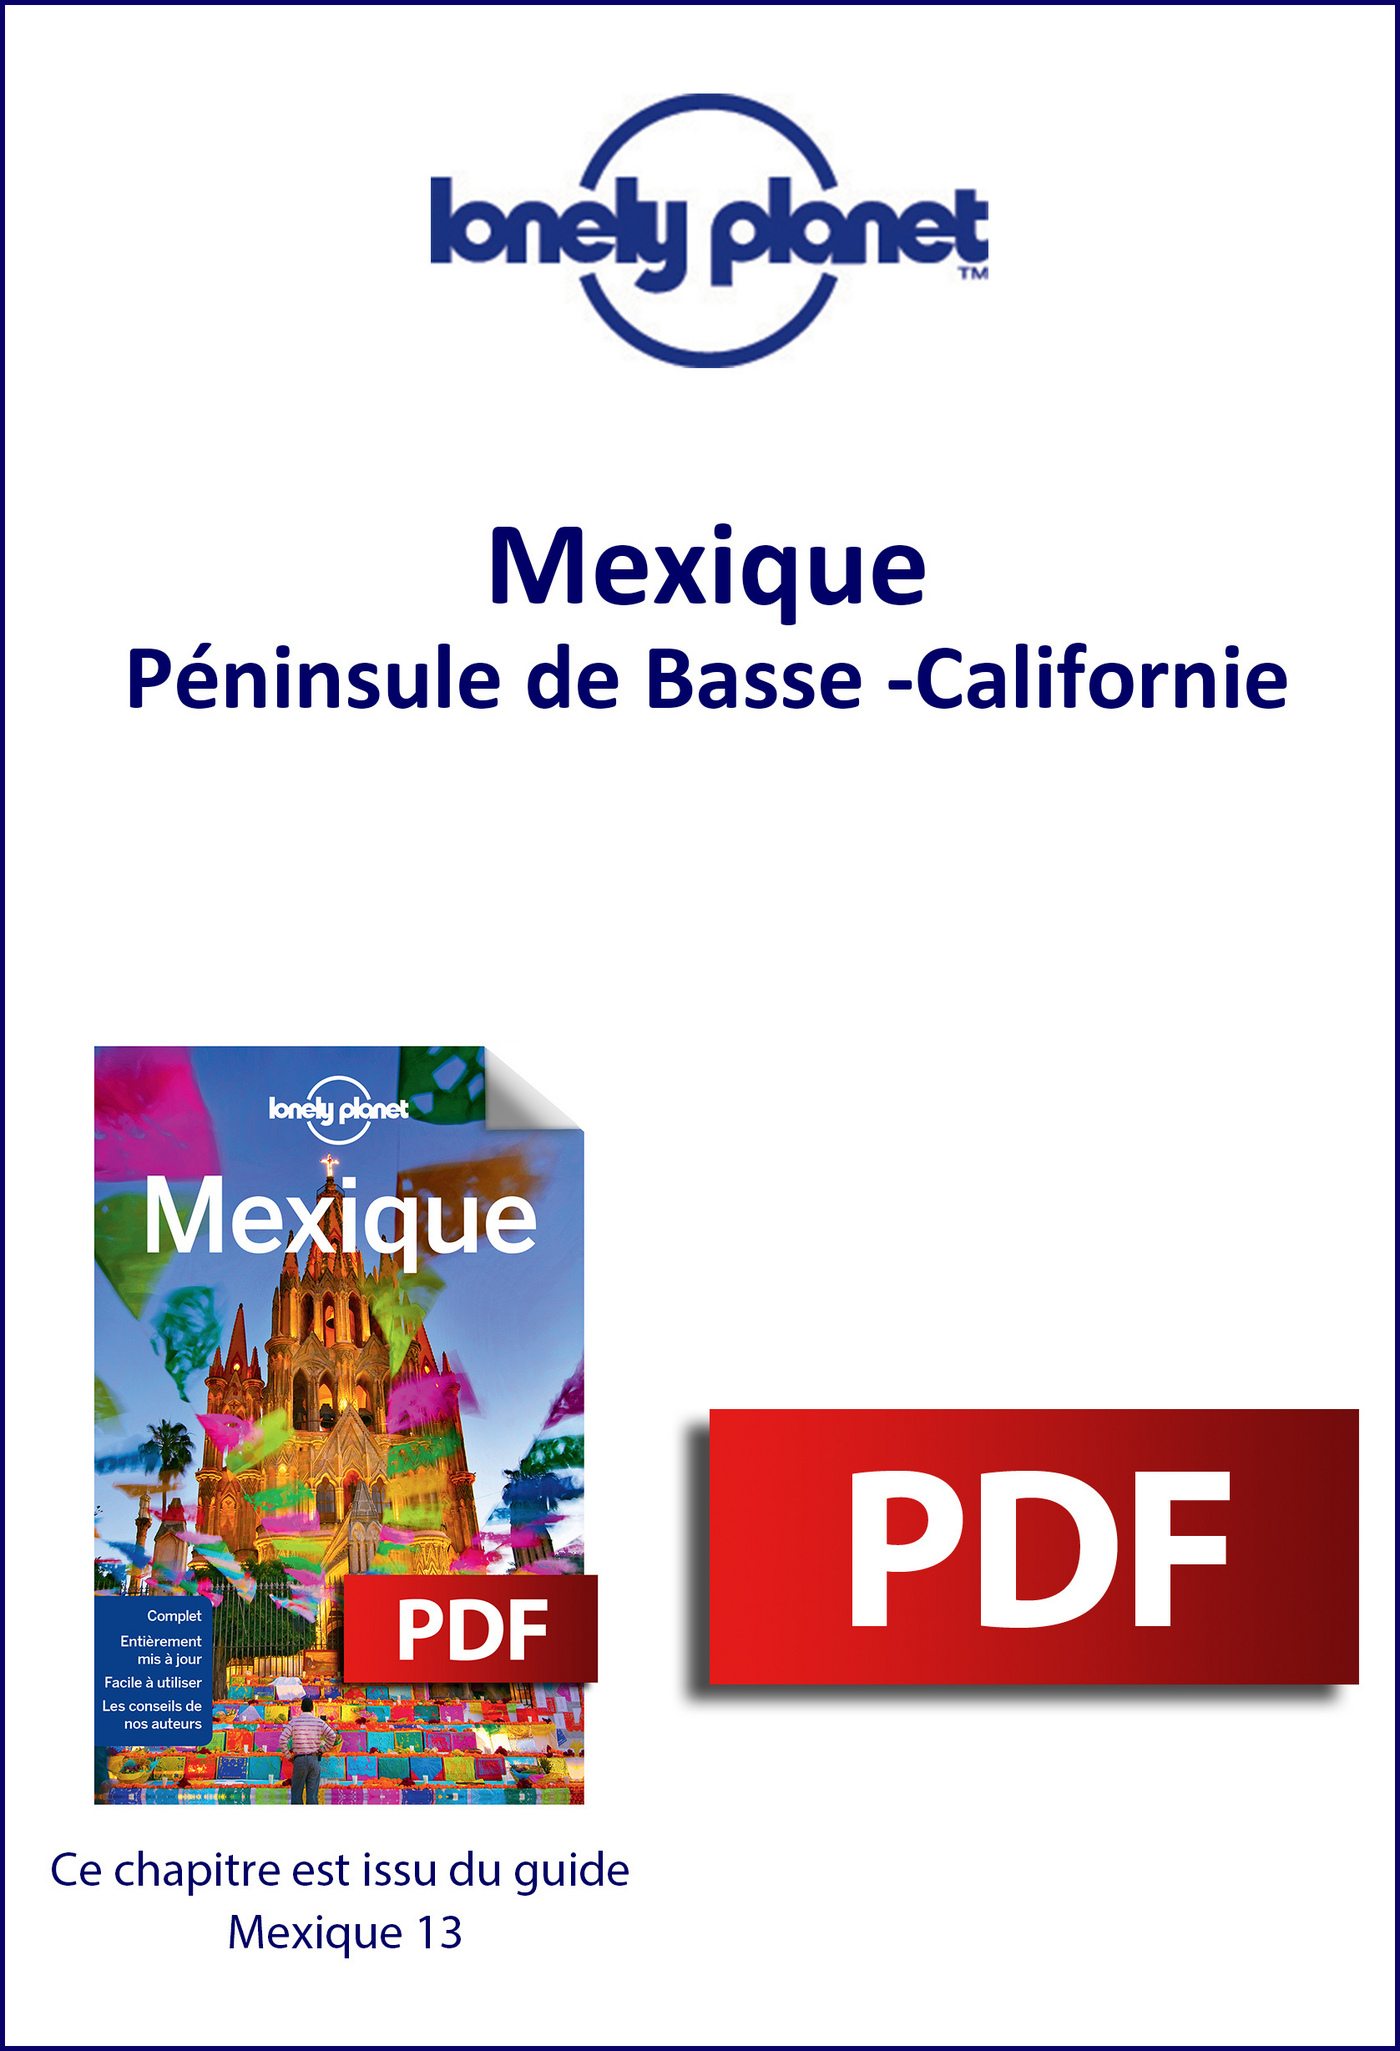 Mexique - Péninsule de Basse-Californie